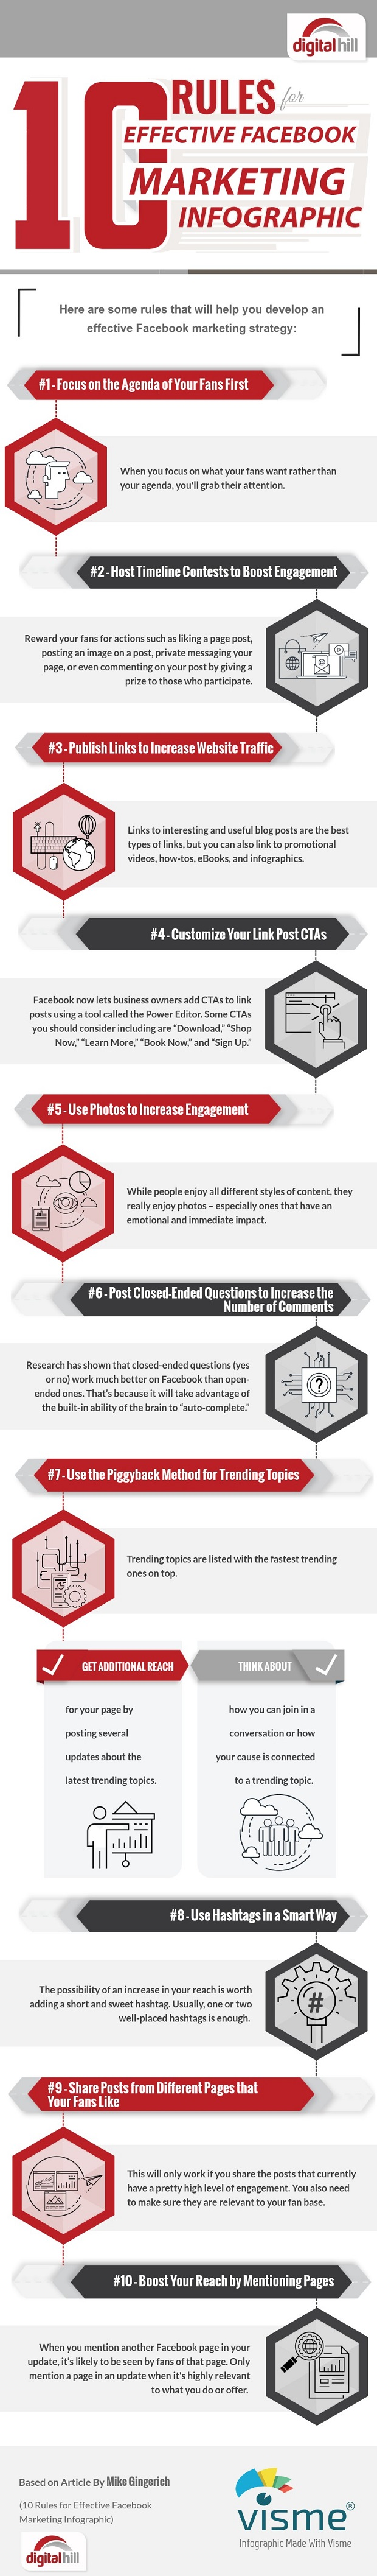 10-rules-for-effective-facebook-marketing-infographic